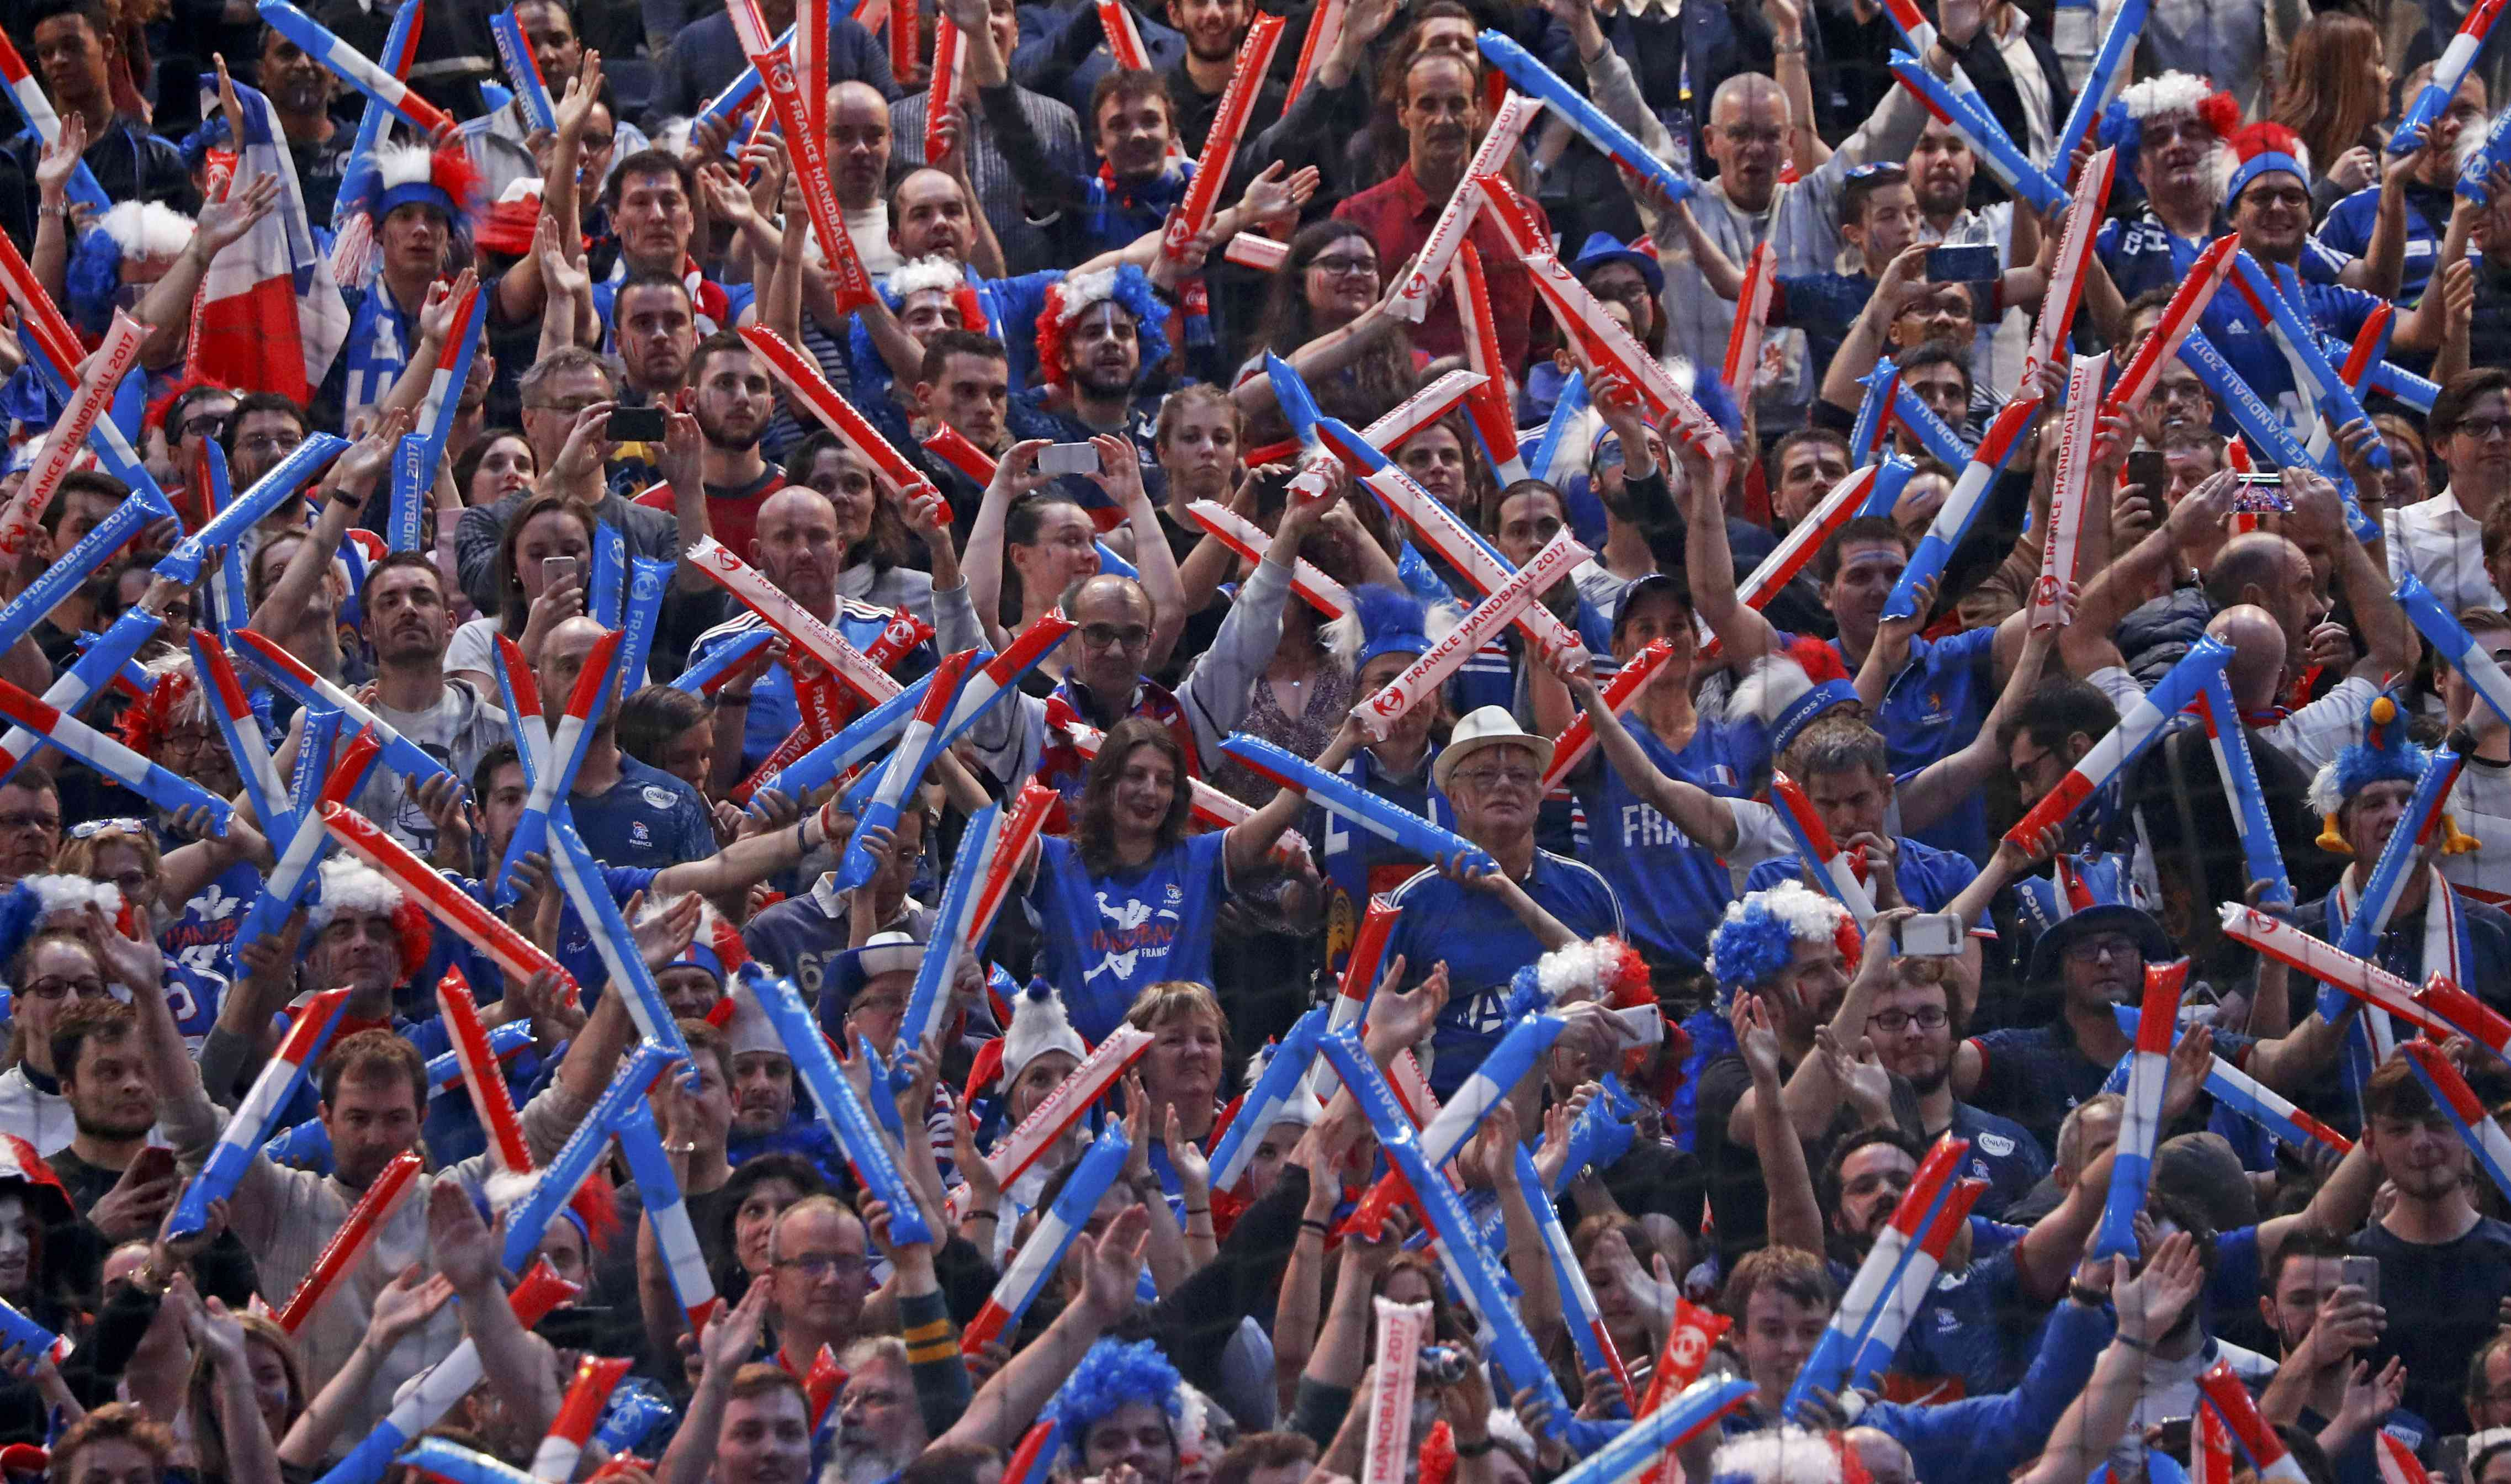 Men's Handball - France v Norway - 2017 Men's World Championship, Final - AccorHotels Arena, Paris, France - 29/01/17 - France's supporters cheer for their team.    REUTERS/Charles Platiau